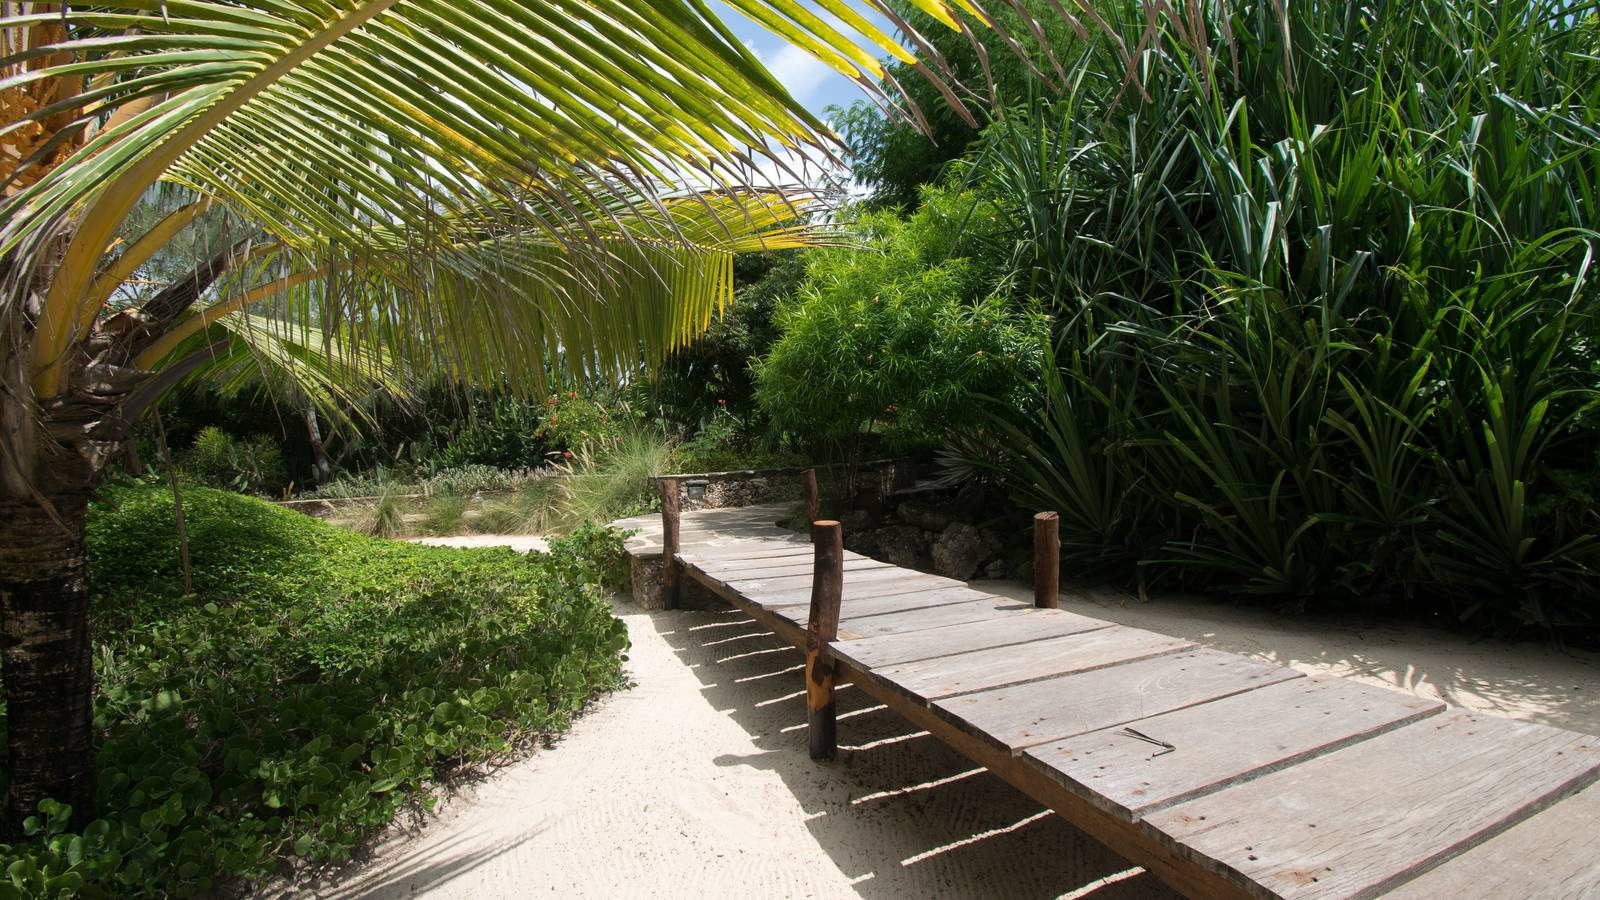 Wooden bridge on sandy garden